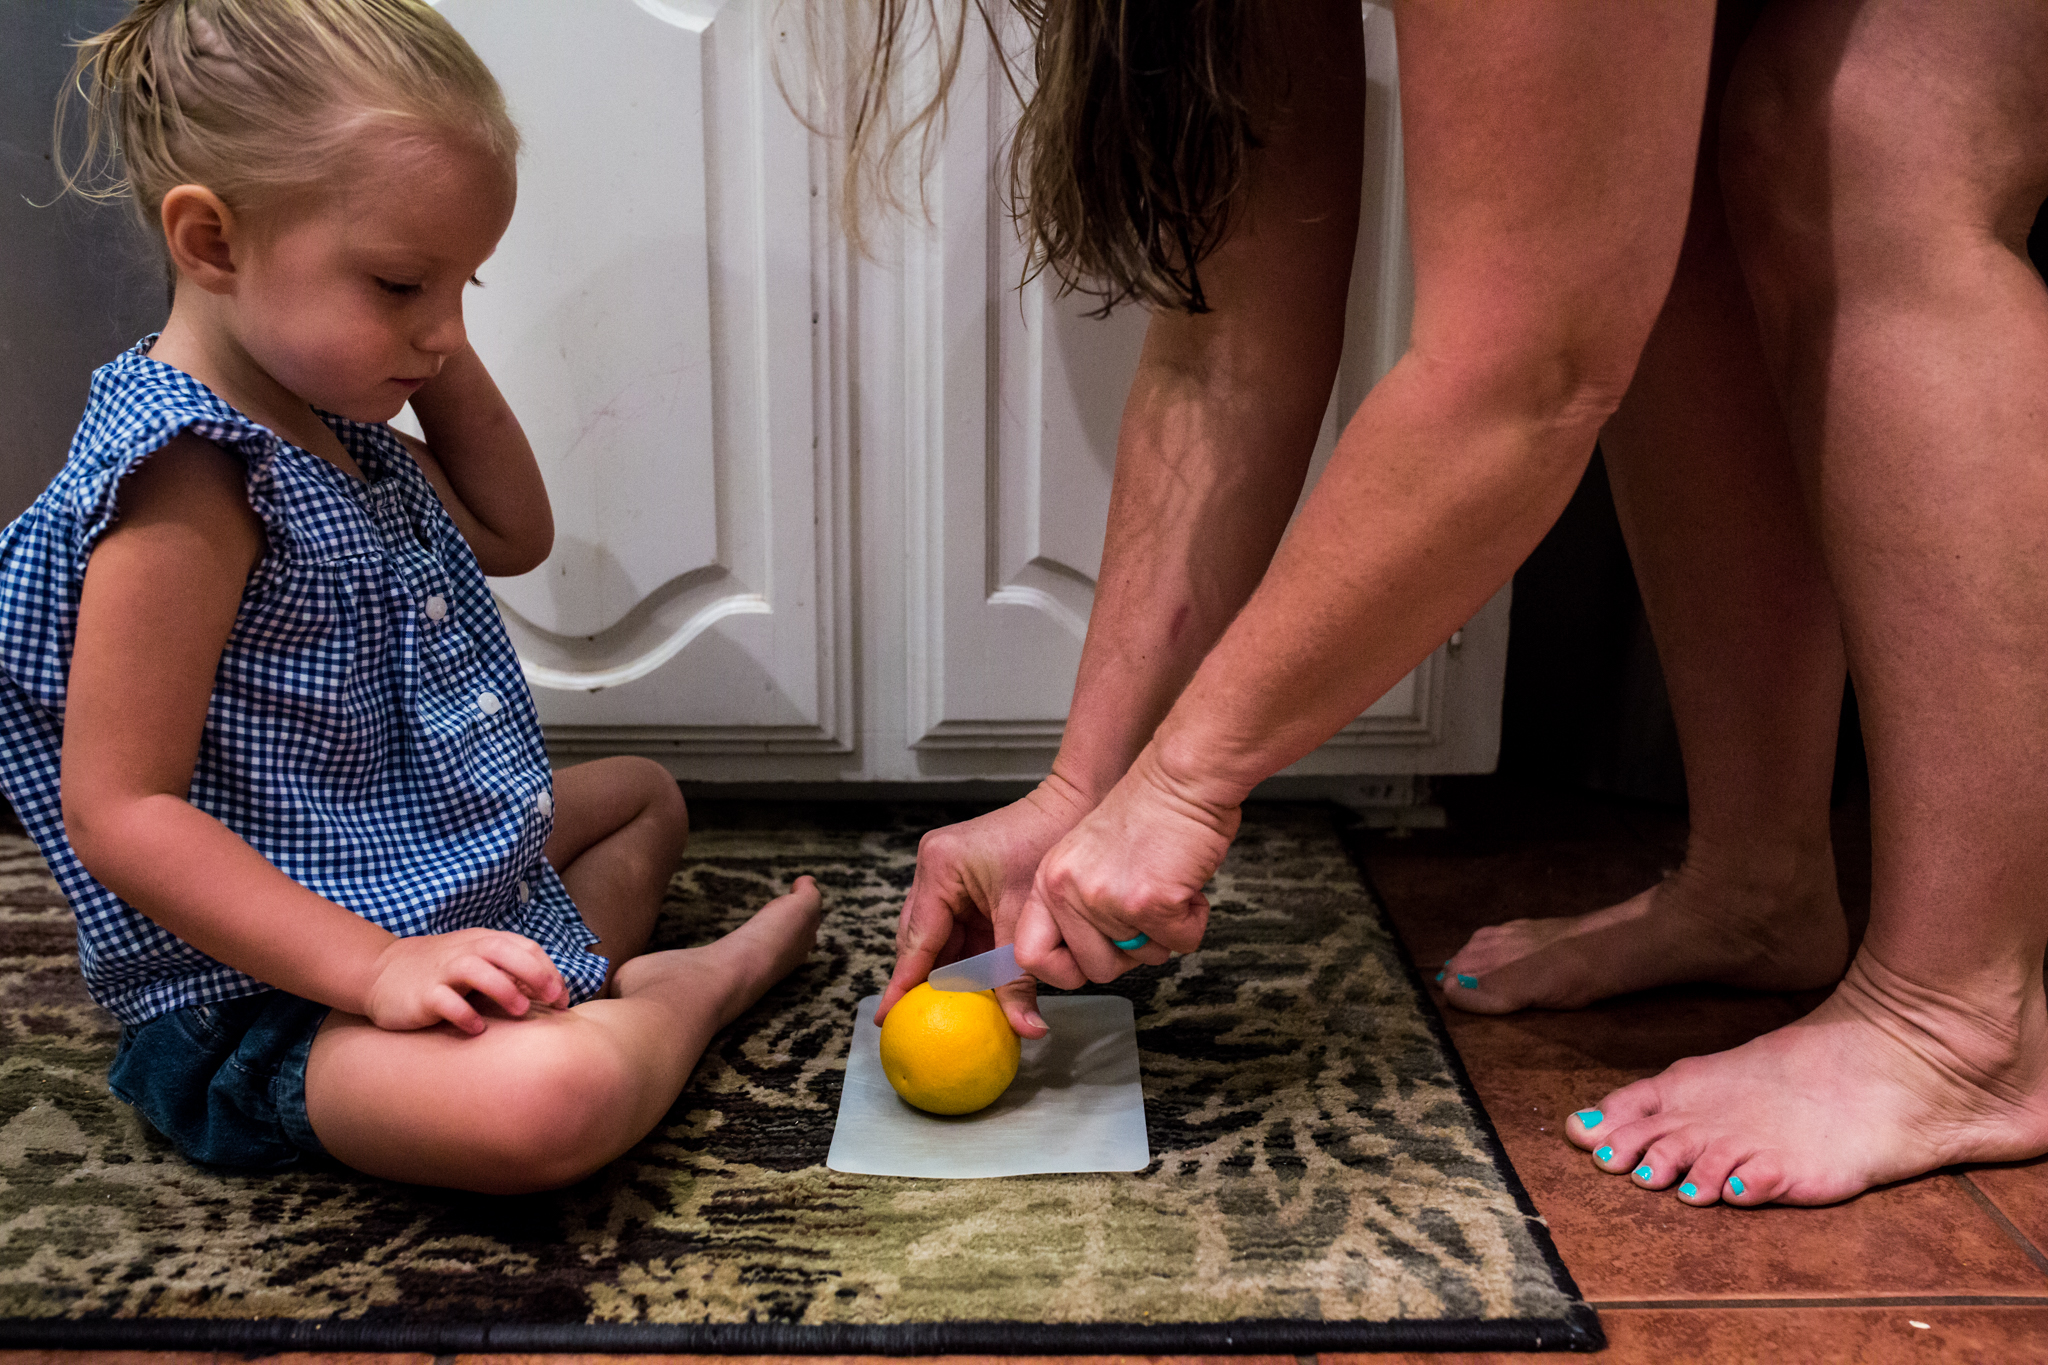 During an in-home newborn session, Lawren Rose Photography takes a photo of grandma cutting her granddaughter an orange on a cutting board on the floor